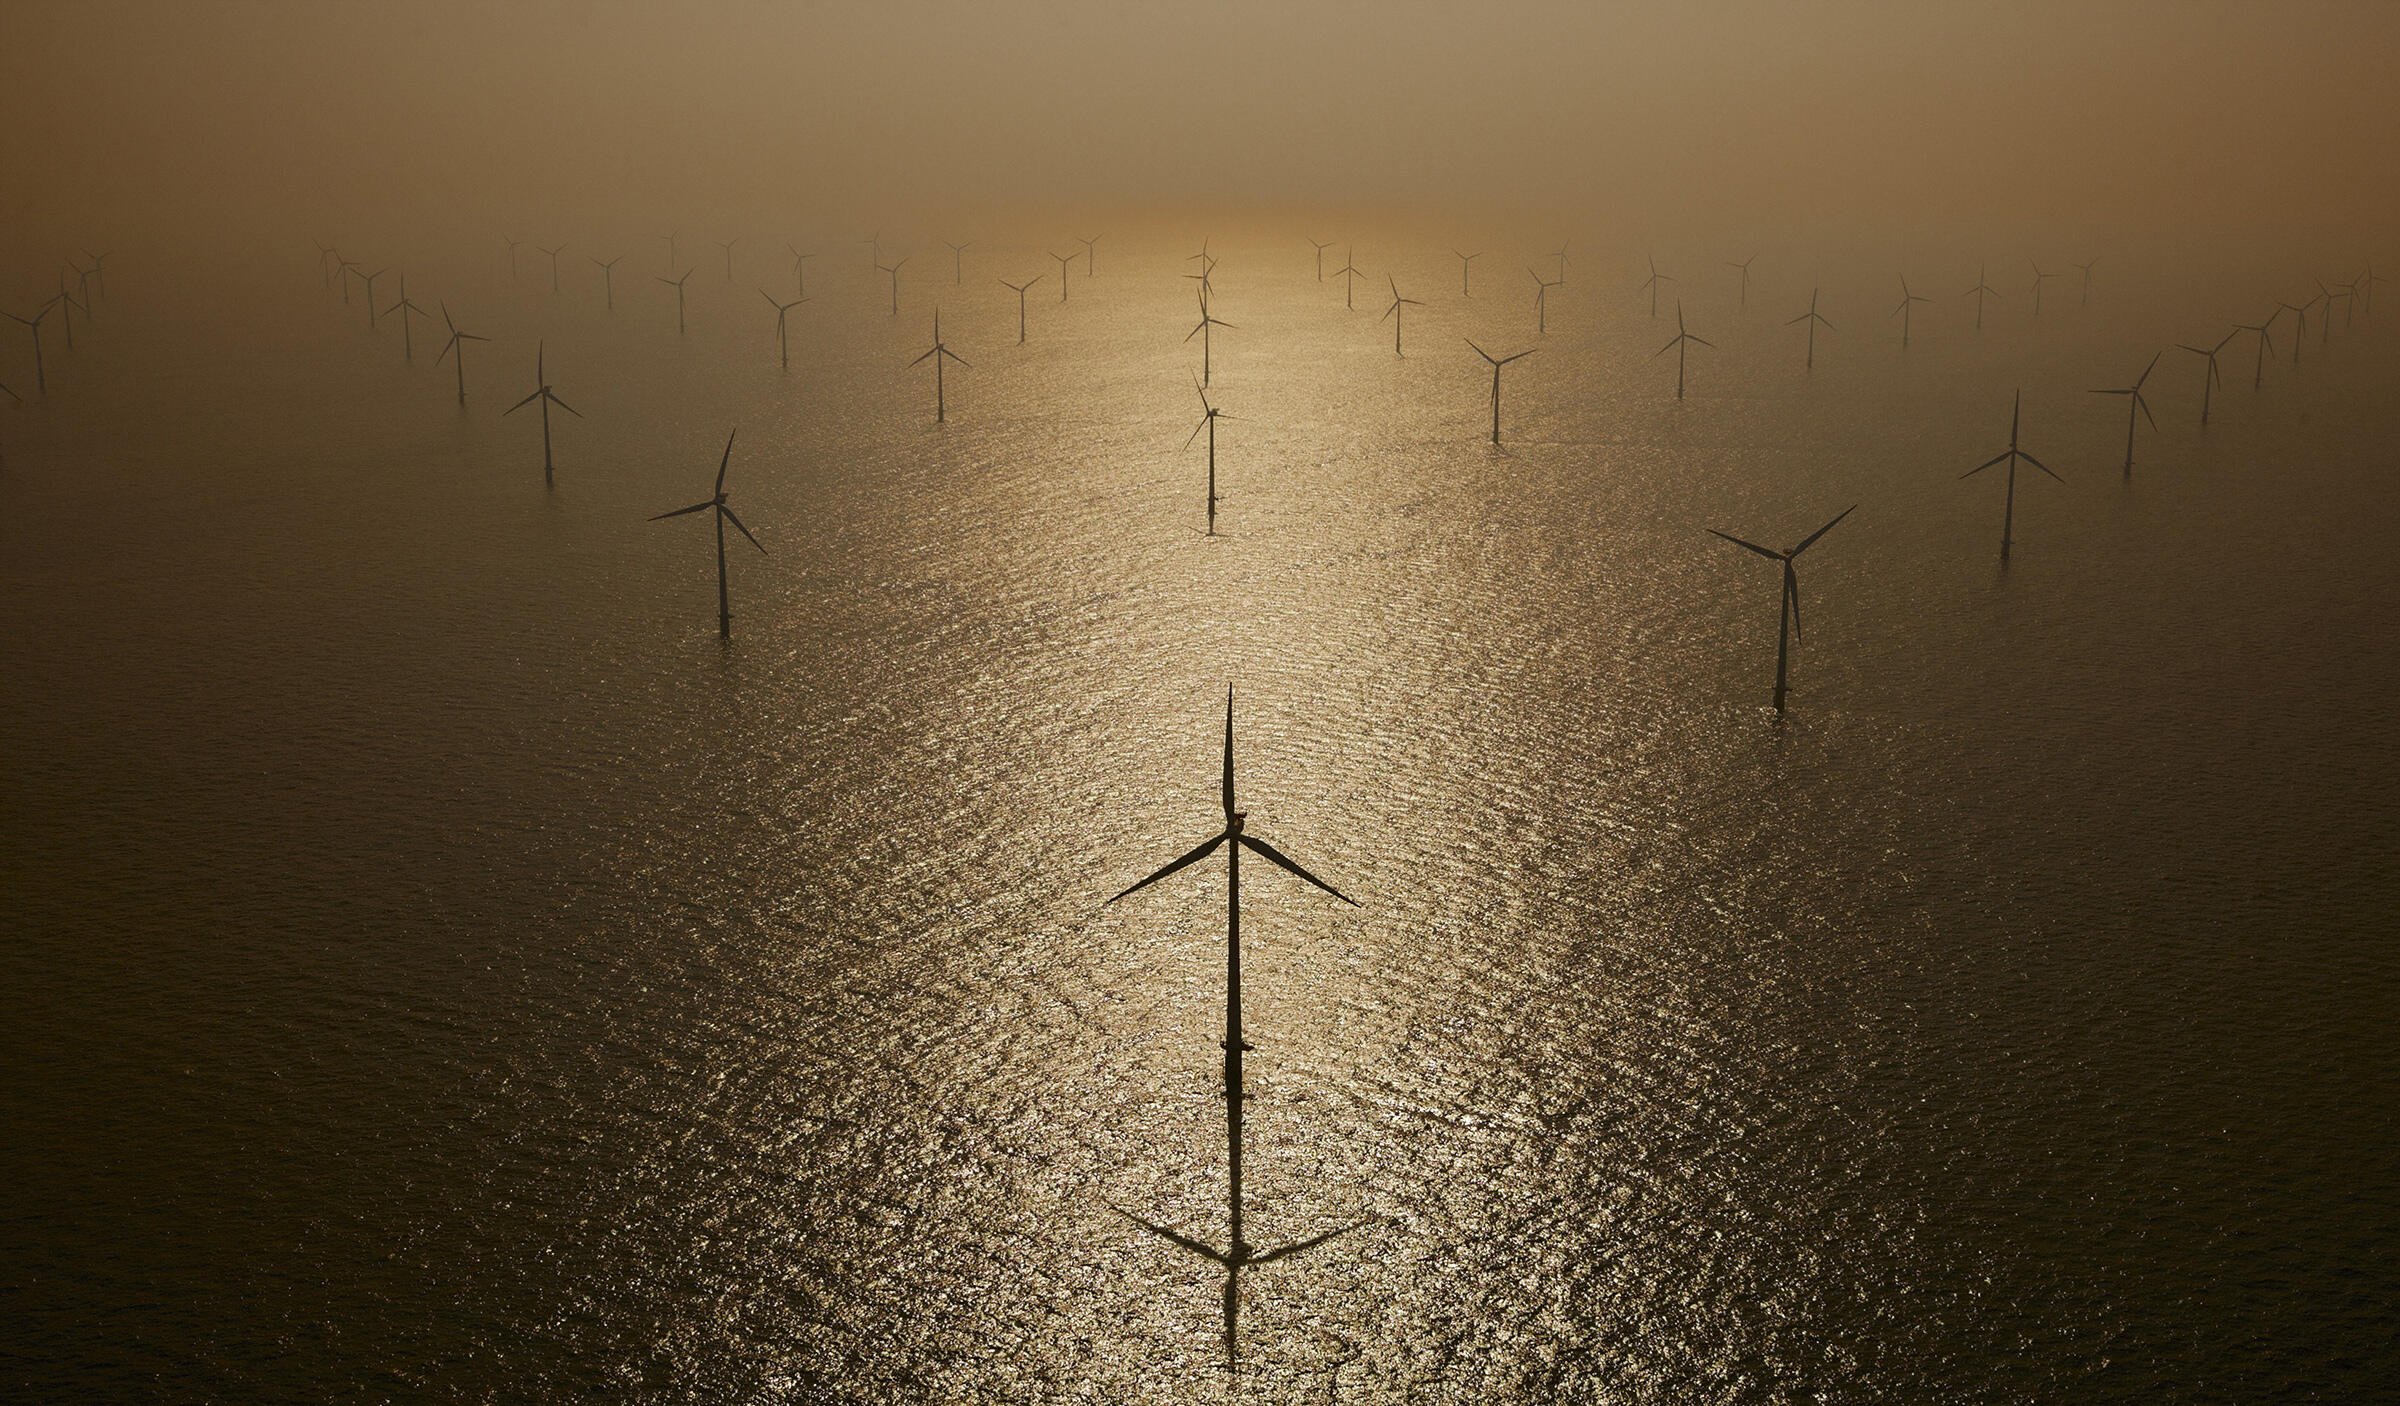 The updated MBTA will protect birds from threats such as wind turbines. Cameron Davidson/Corbis